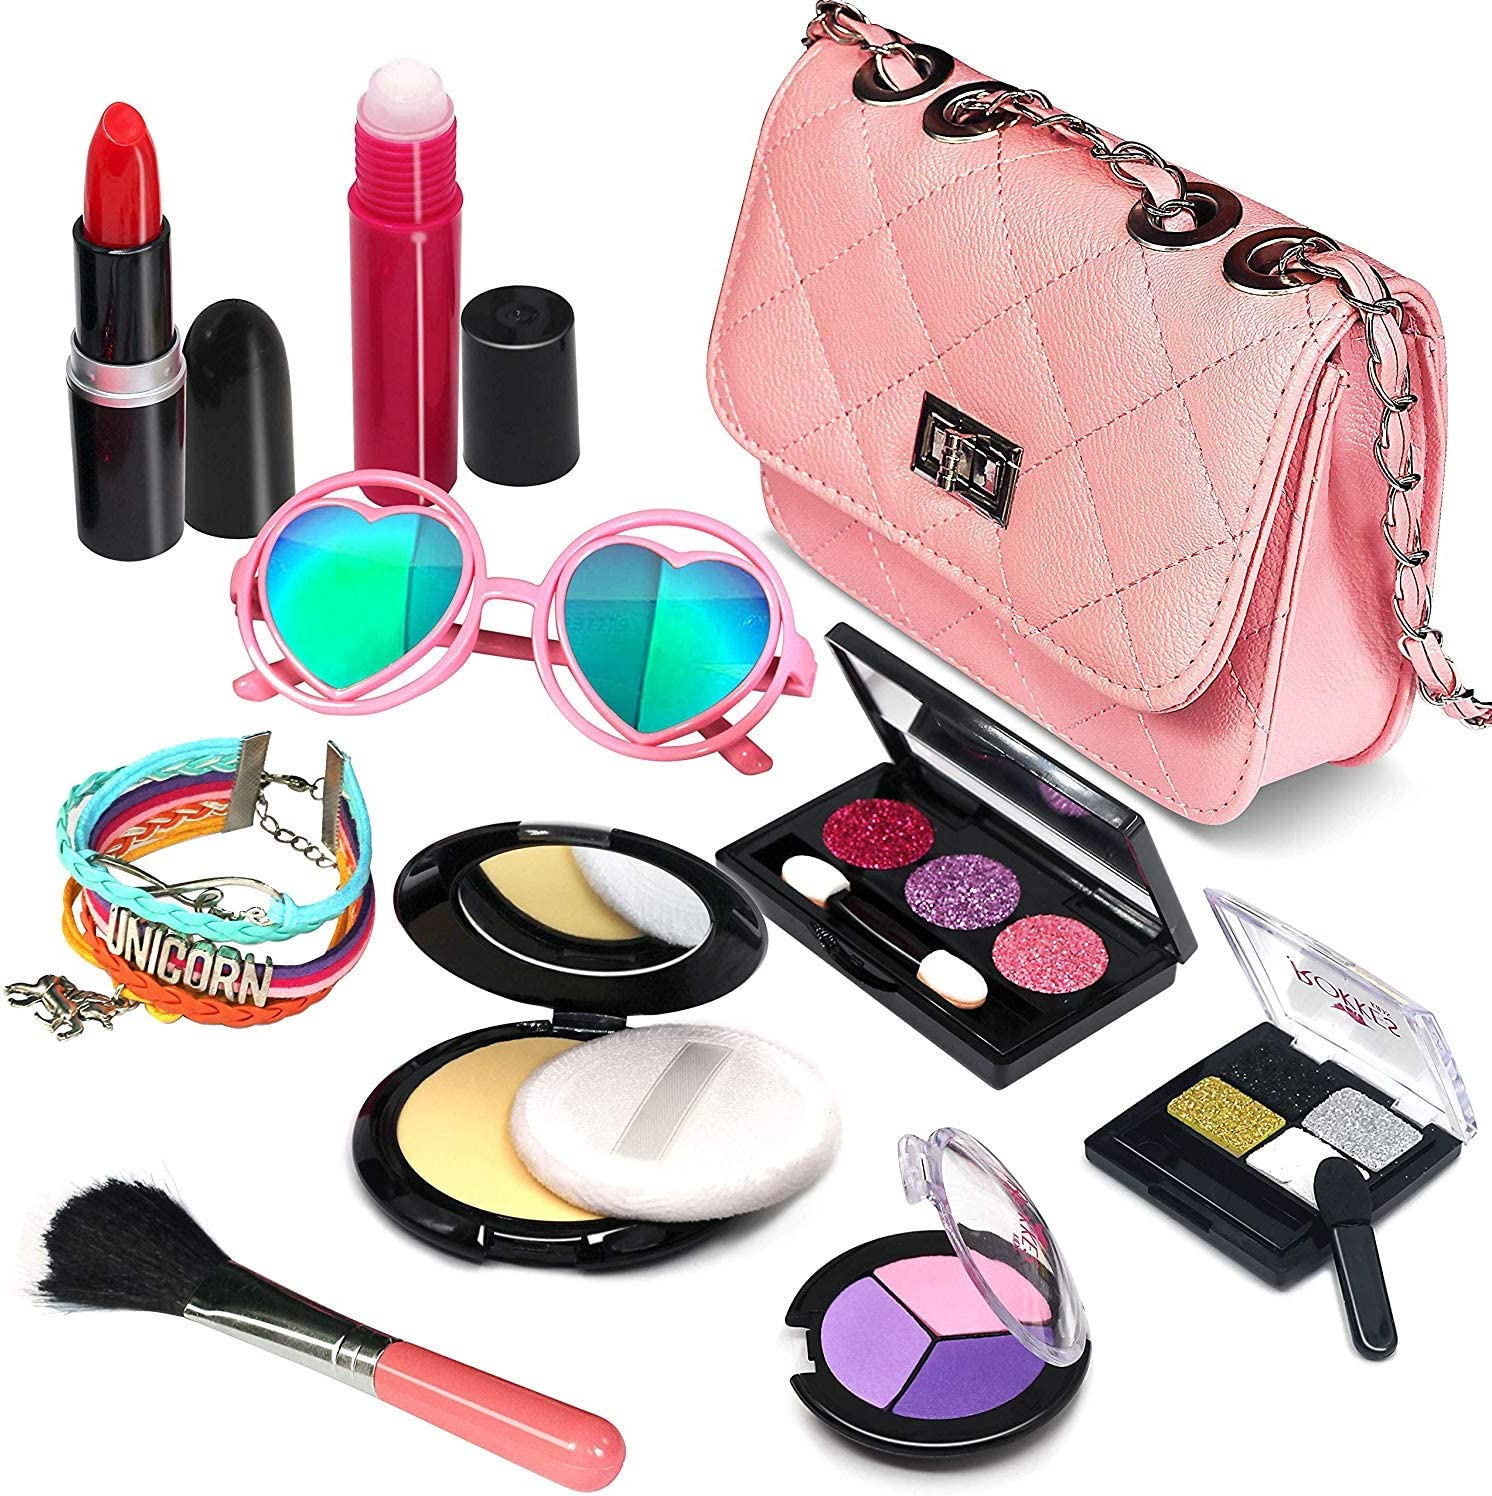 Amazon Com Pretend Makeup Girls Cosmetic Toys Fake Make Up Kit Pretend Make Up Set For Kids Girl Children Princess Play Makeup Game Christmas Birthday Gifts Cosmetic Toys For 2 3 4